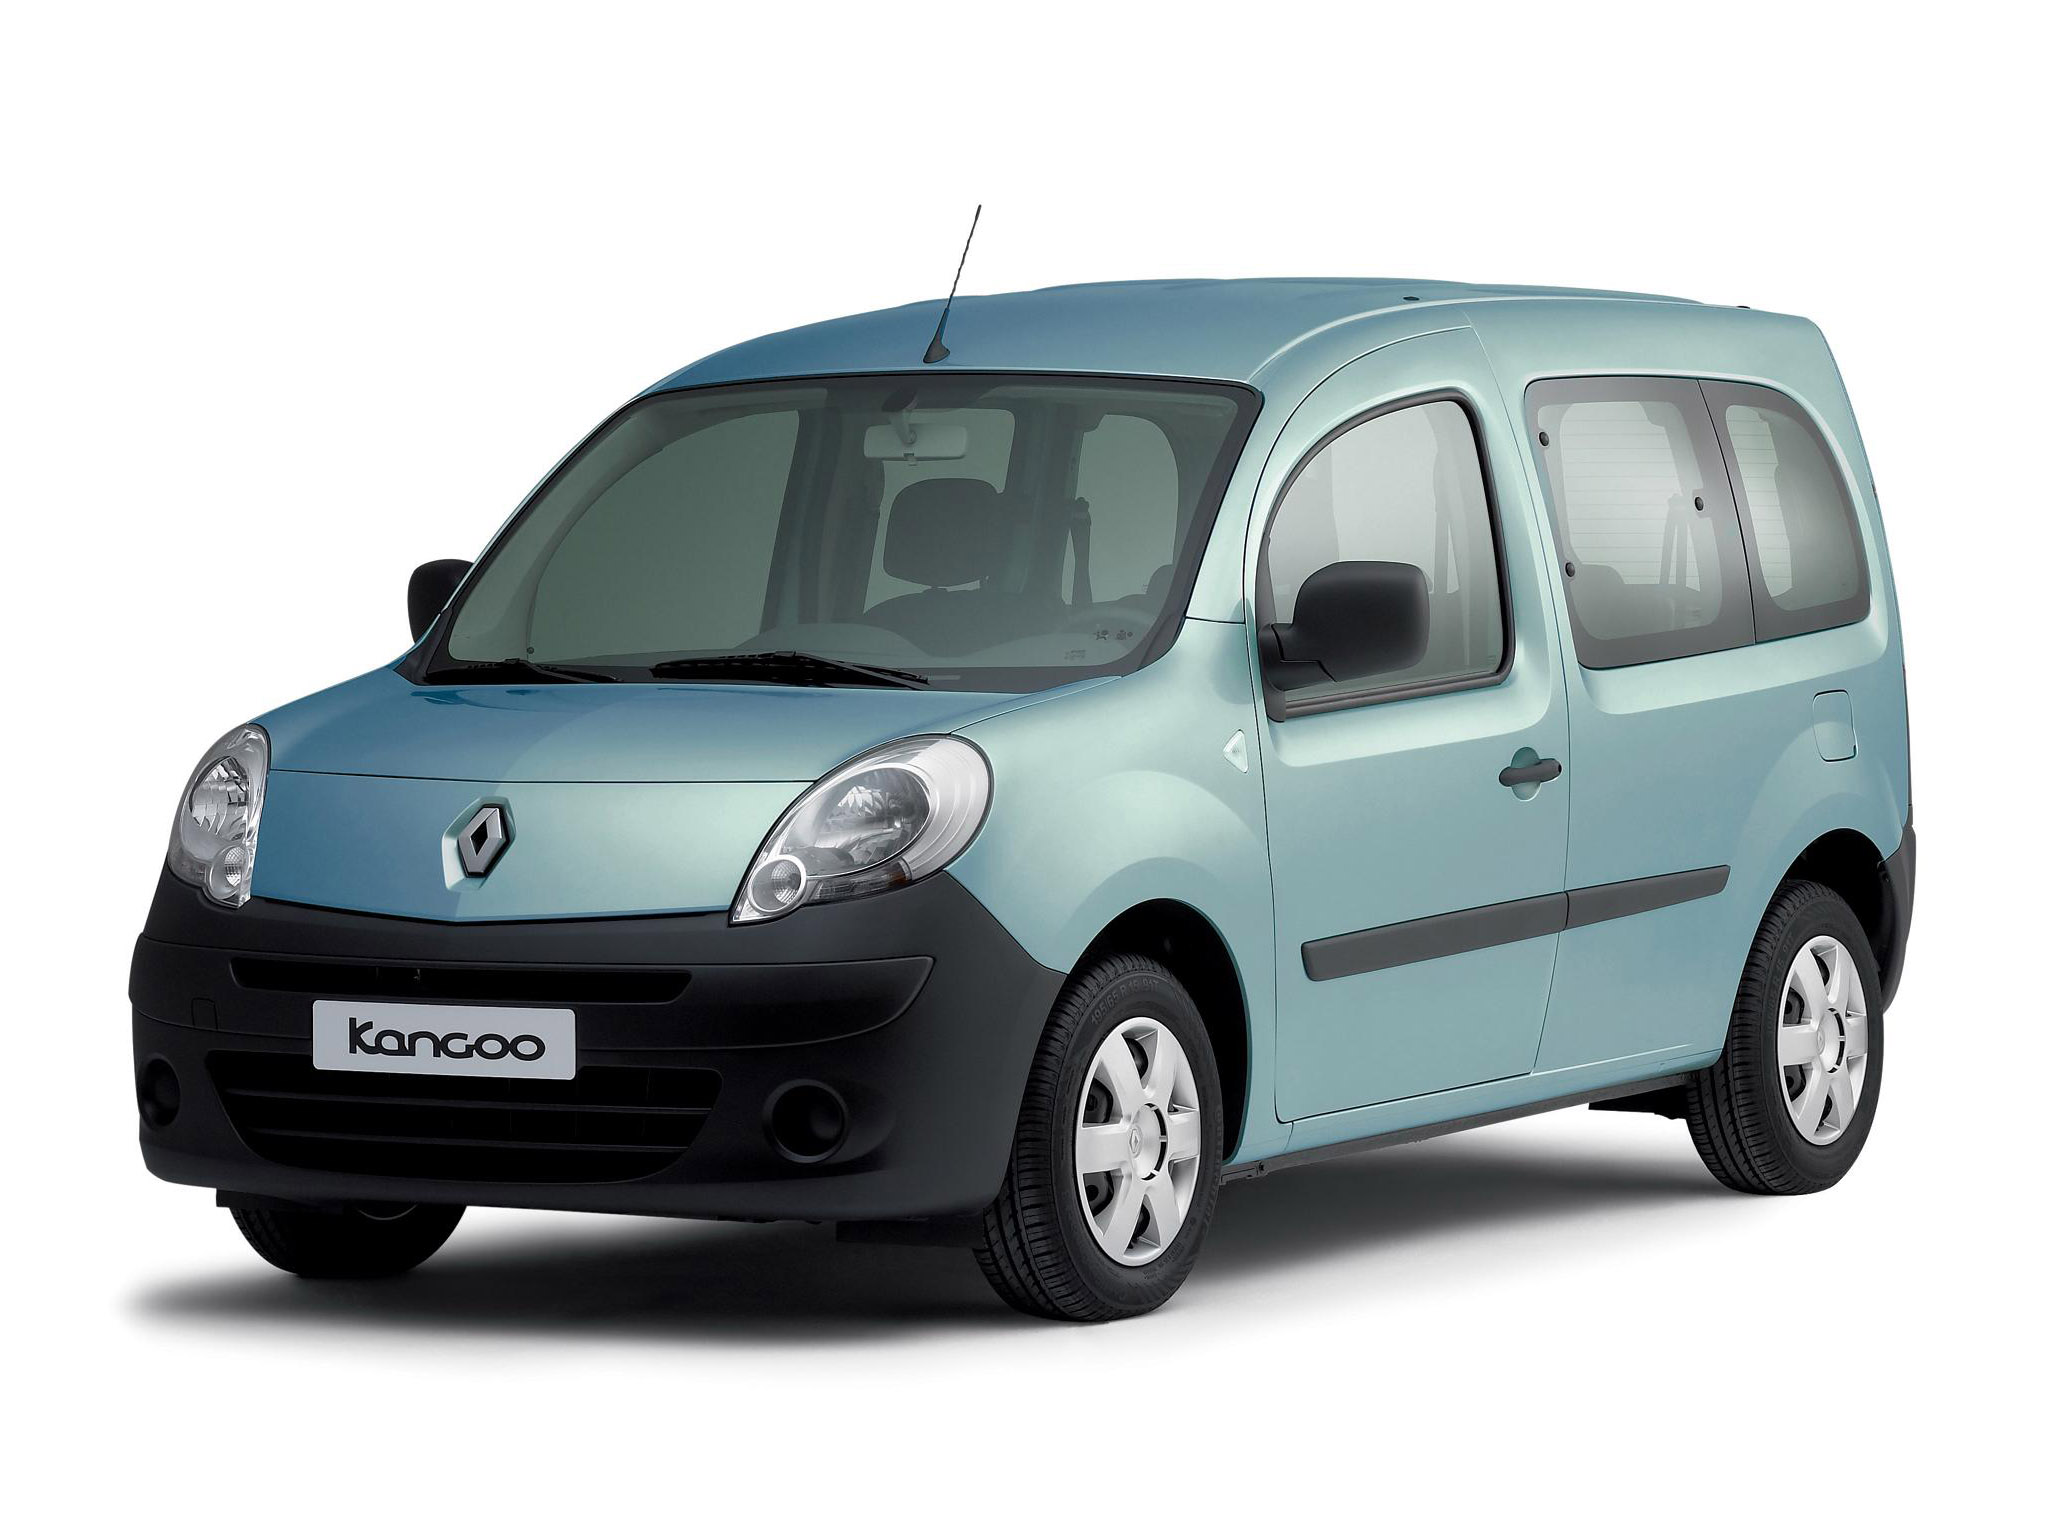 renault kangoo entry version renault kangoo entry version photo 04 car in pictures car photo. Black Bedroom Furniture Sets. Home Design Ideas